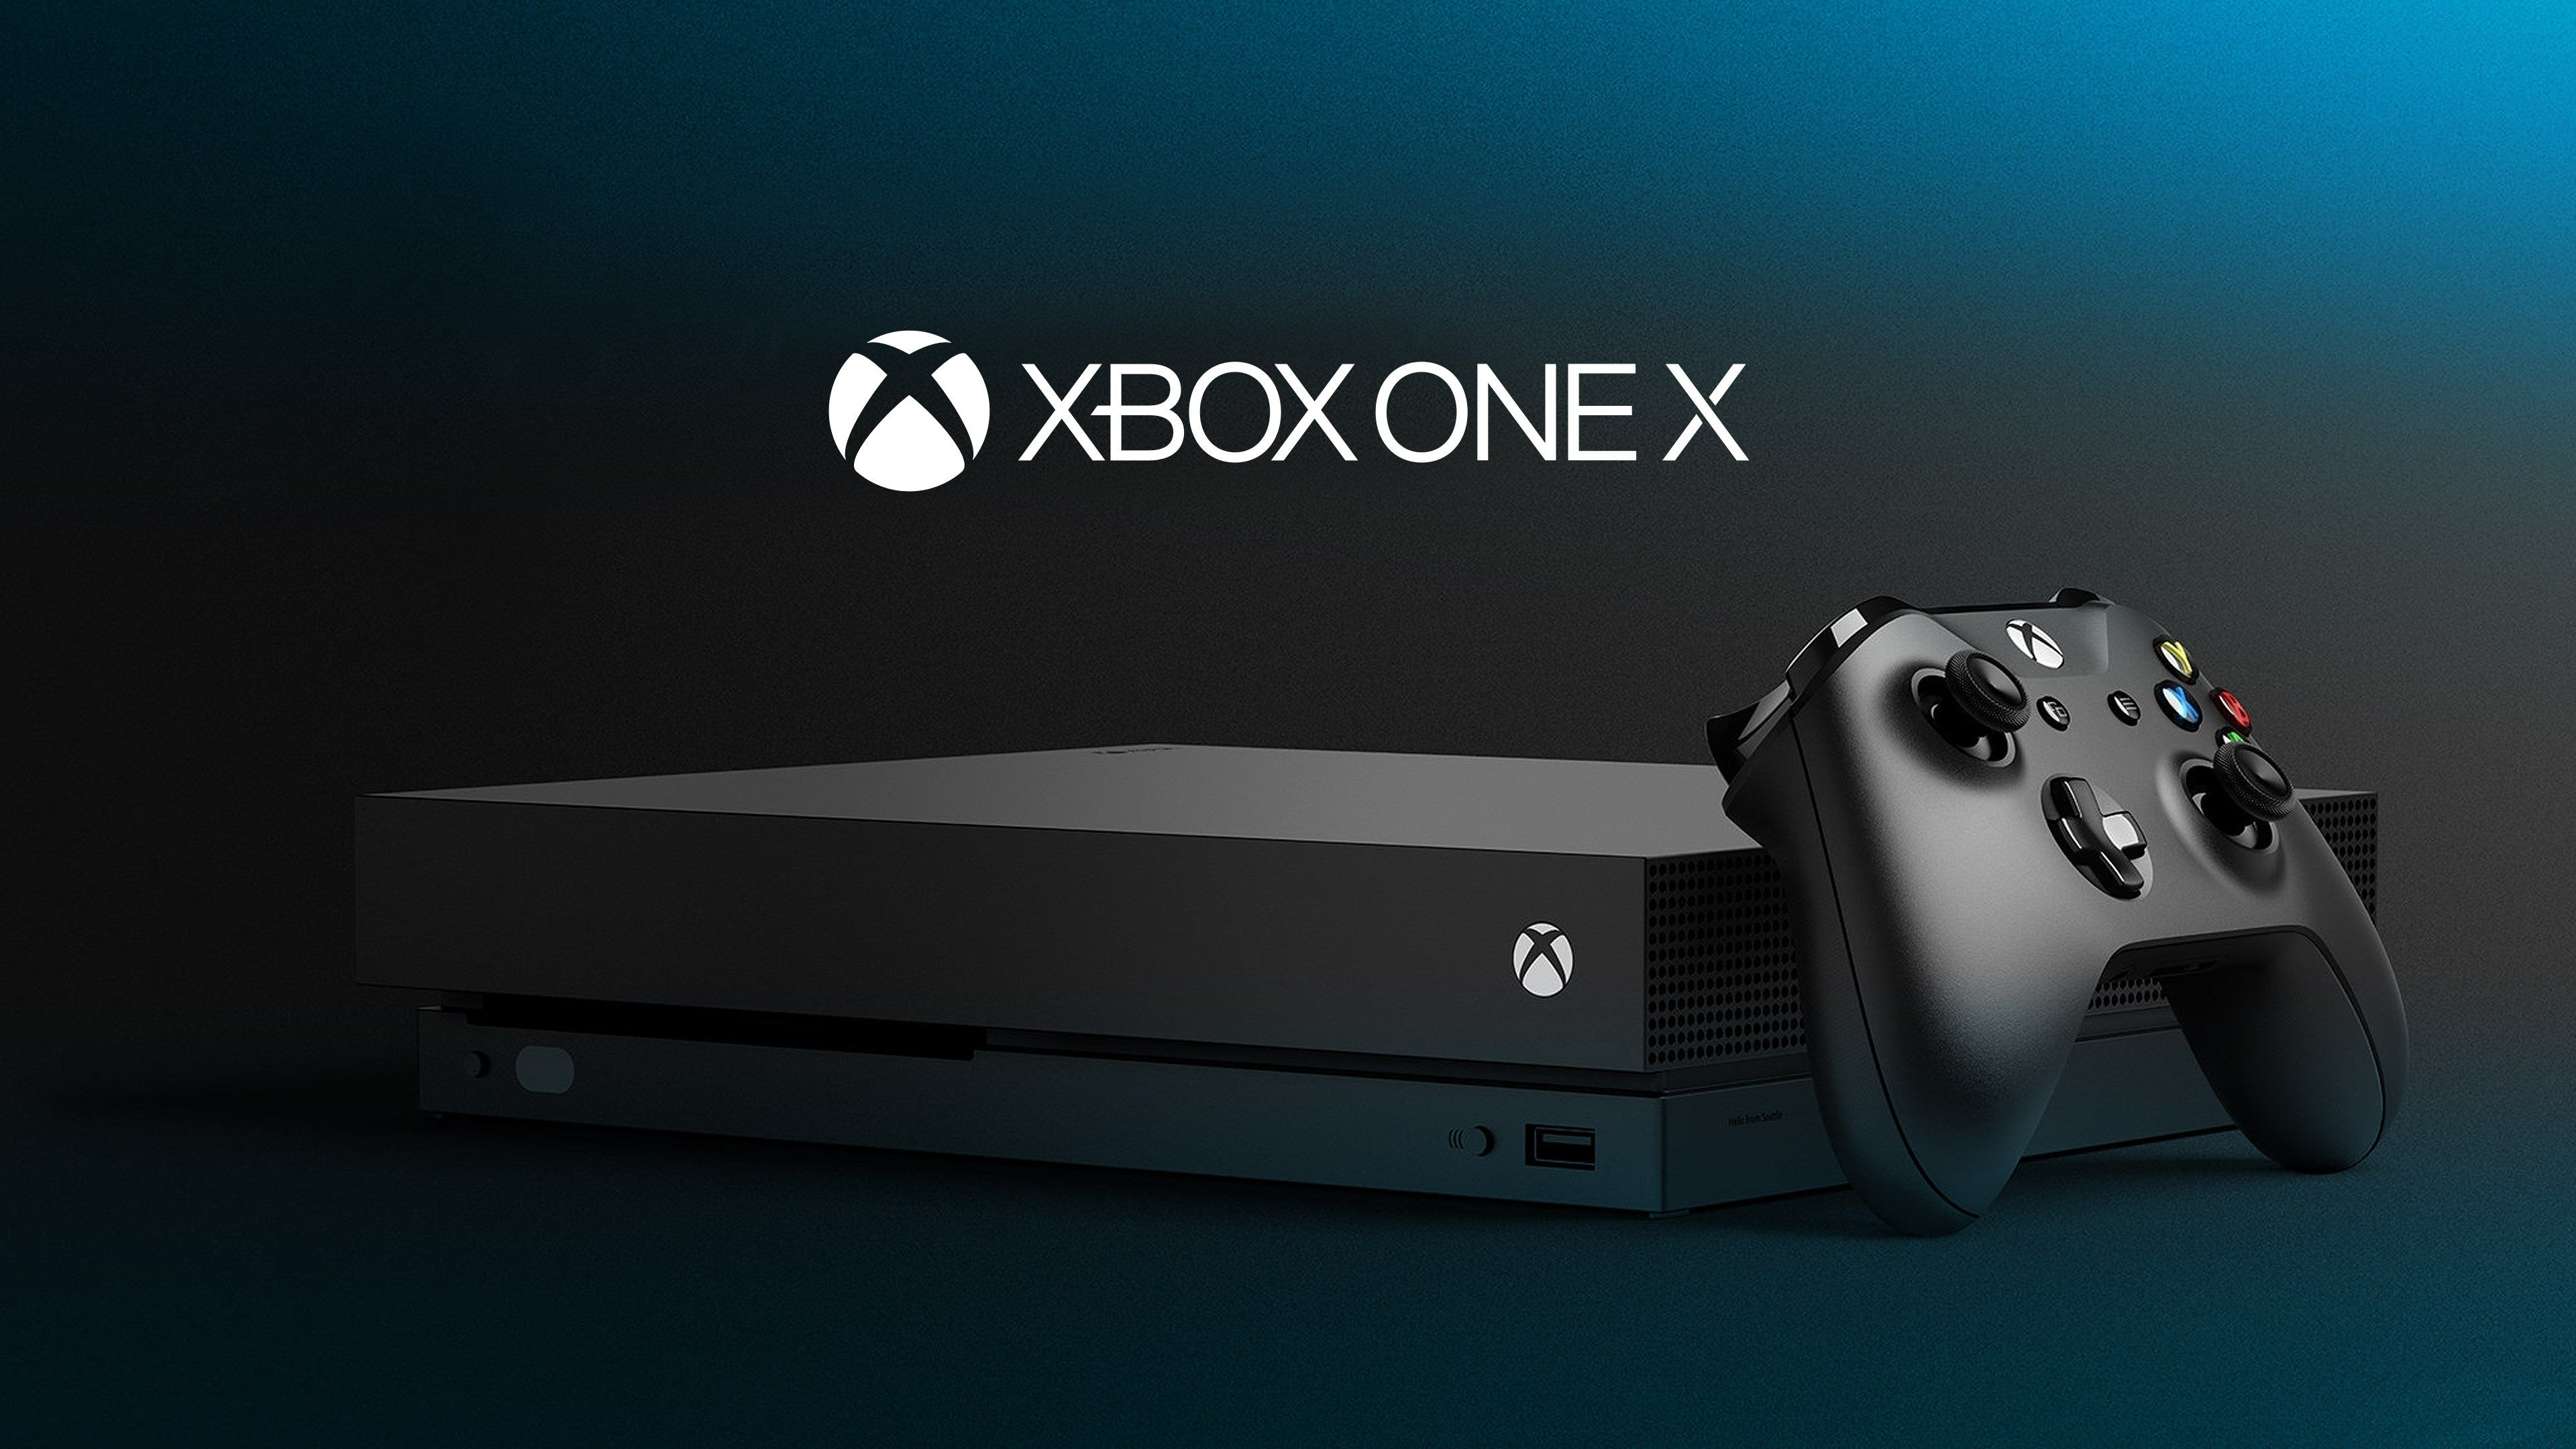 3840x2160 Xbox One X 4k Computer Wallpaper Free Download In 2020